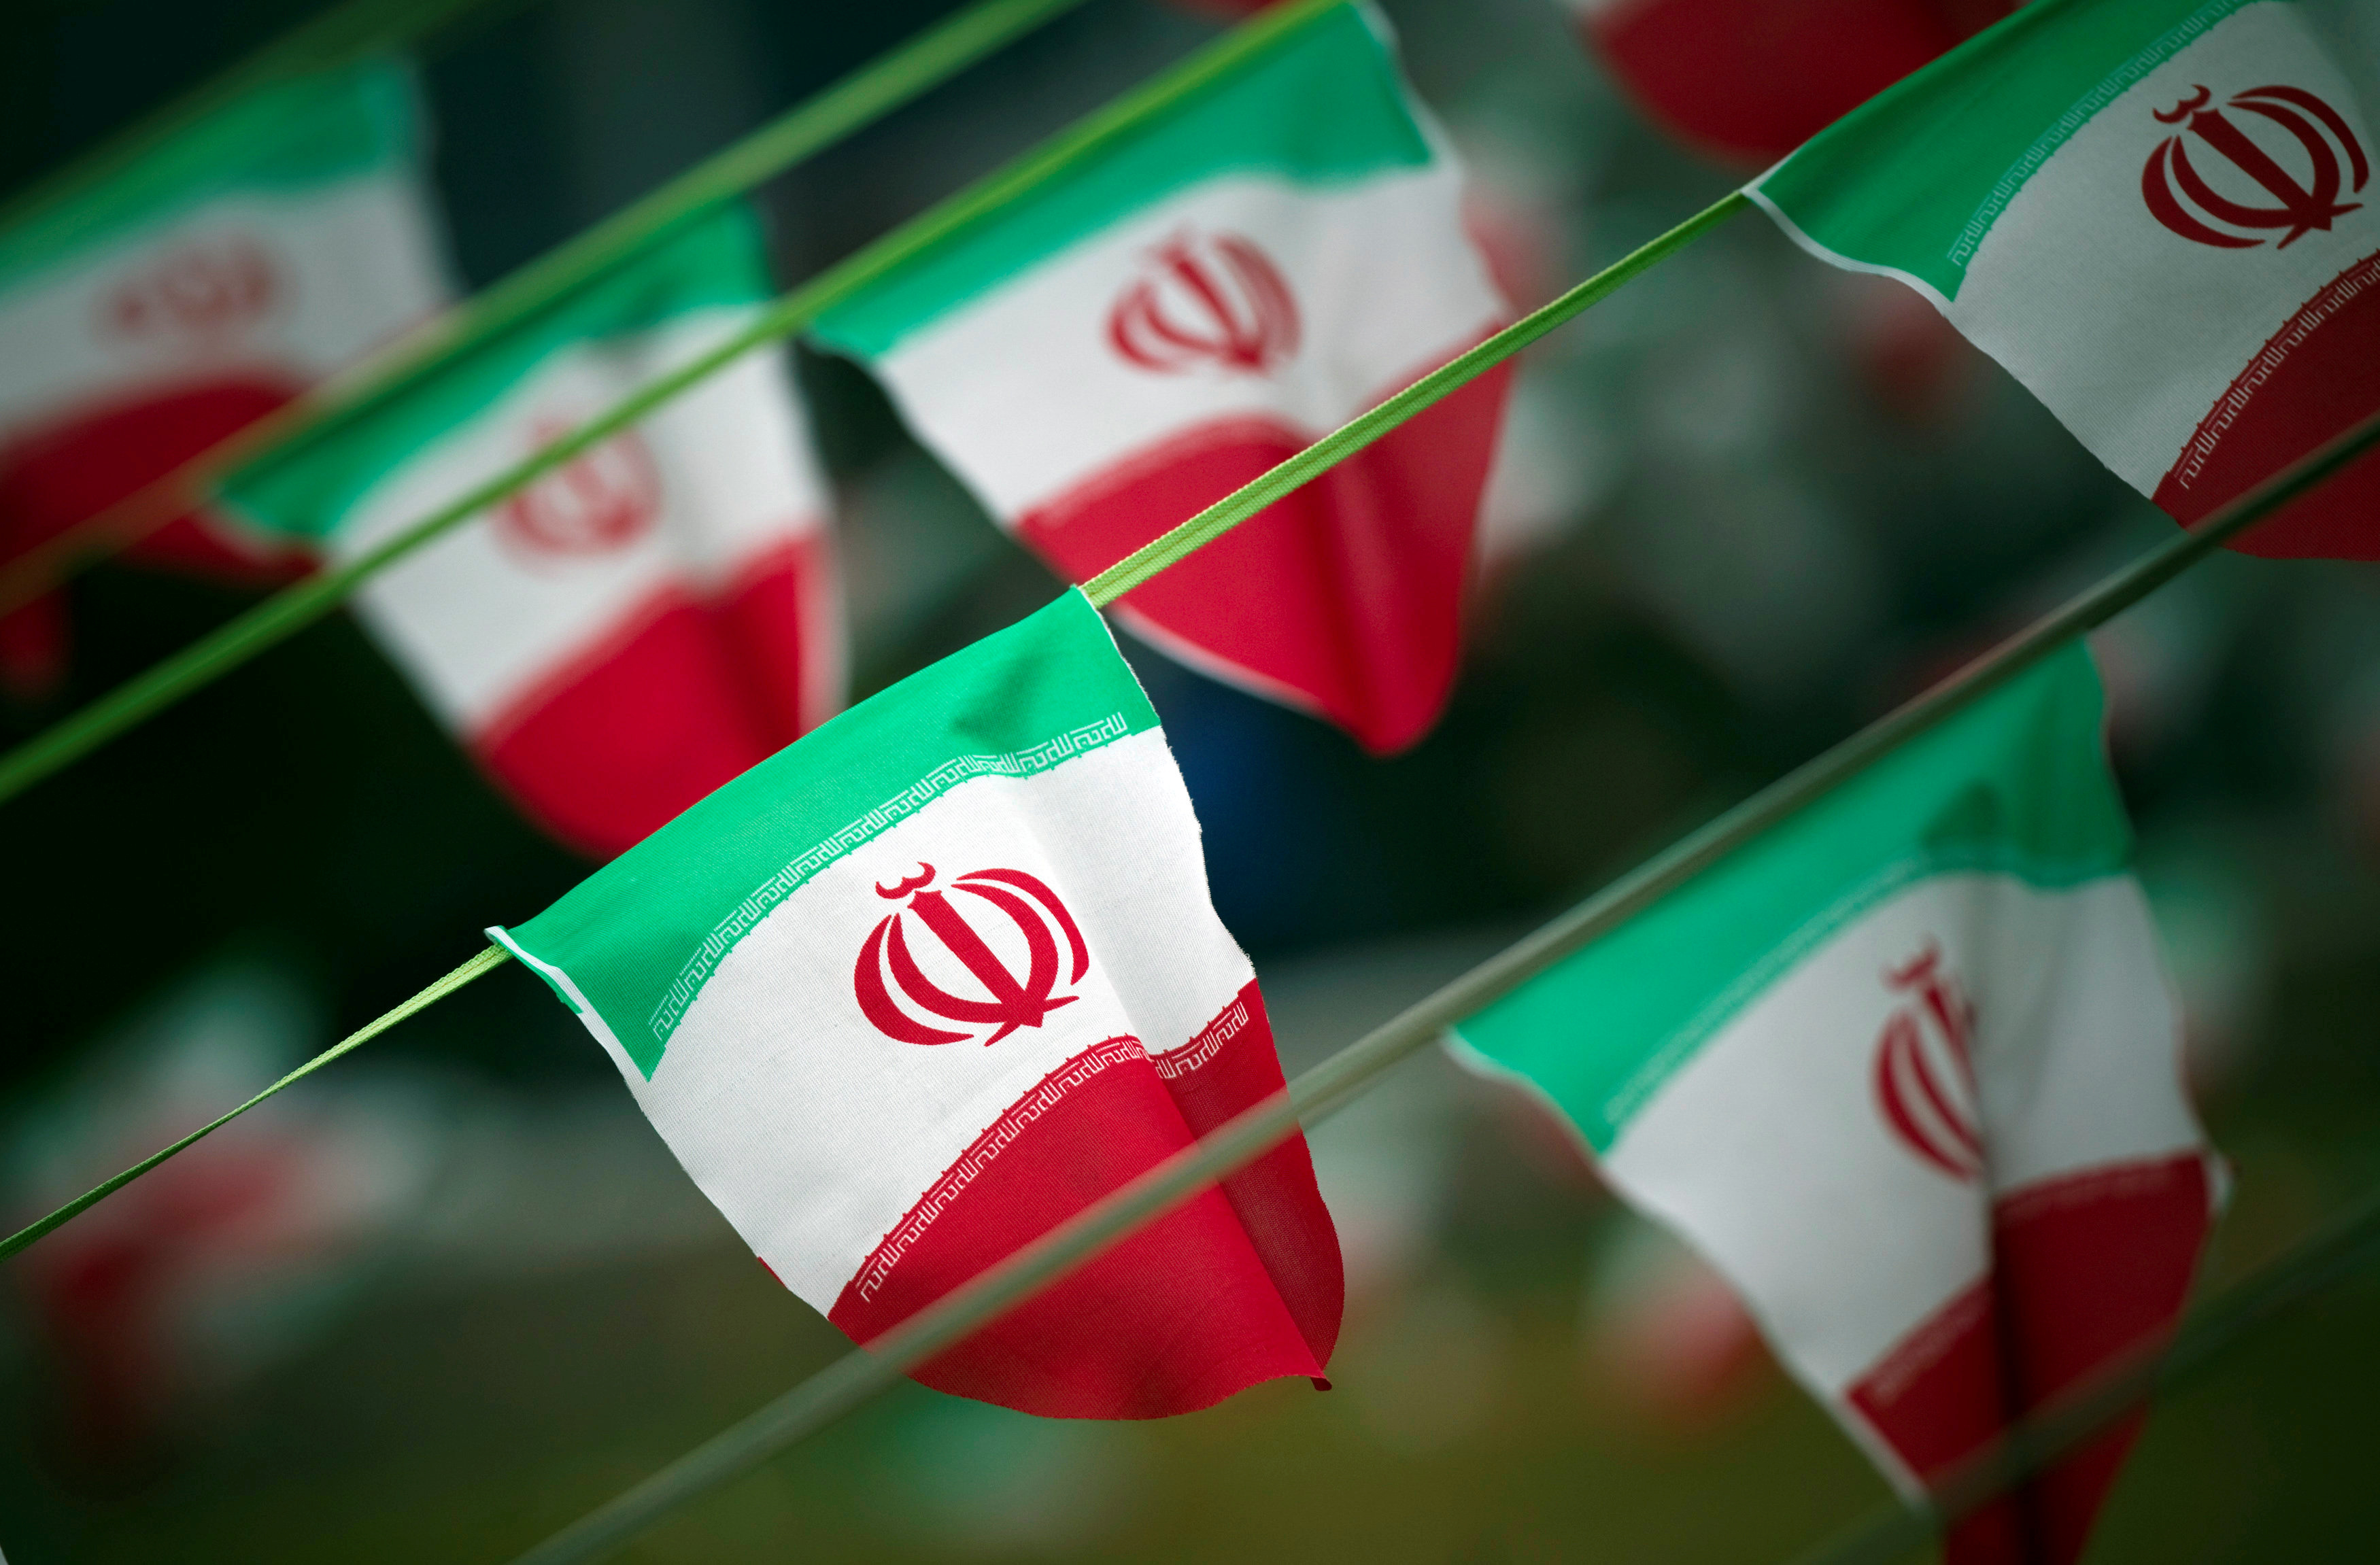 FILE PHOTO: Iran's national flags are seen on a square in Tehran February 10, 2012, a day before the anniversary of the Islamic Revolution. REUTERS/Morteza Nikoubazl/File Photo - RTX2RCC8